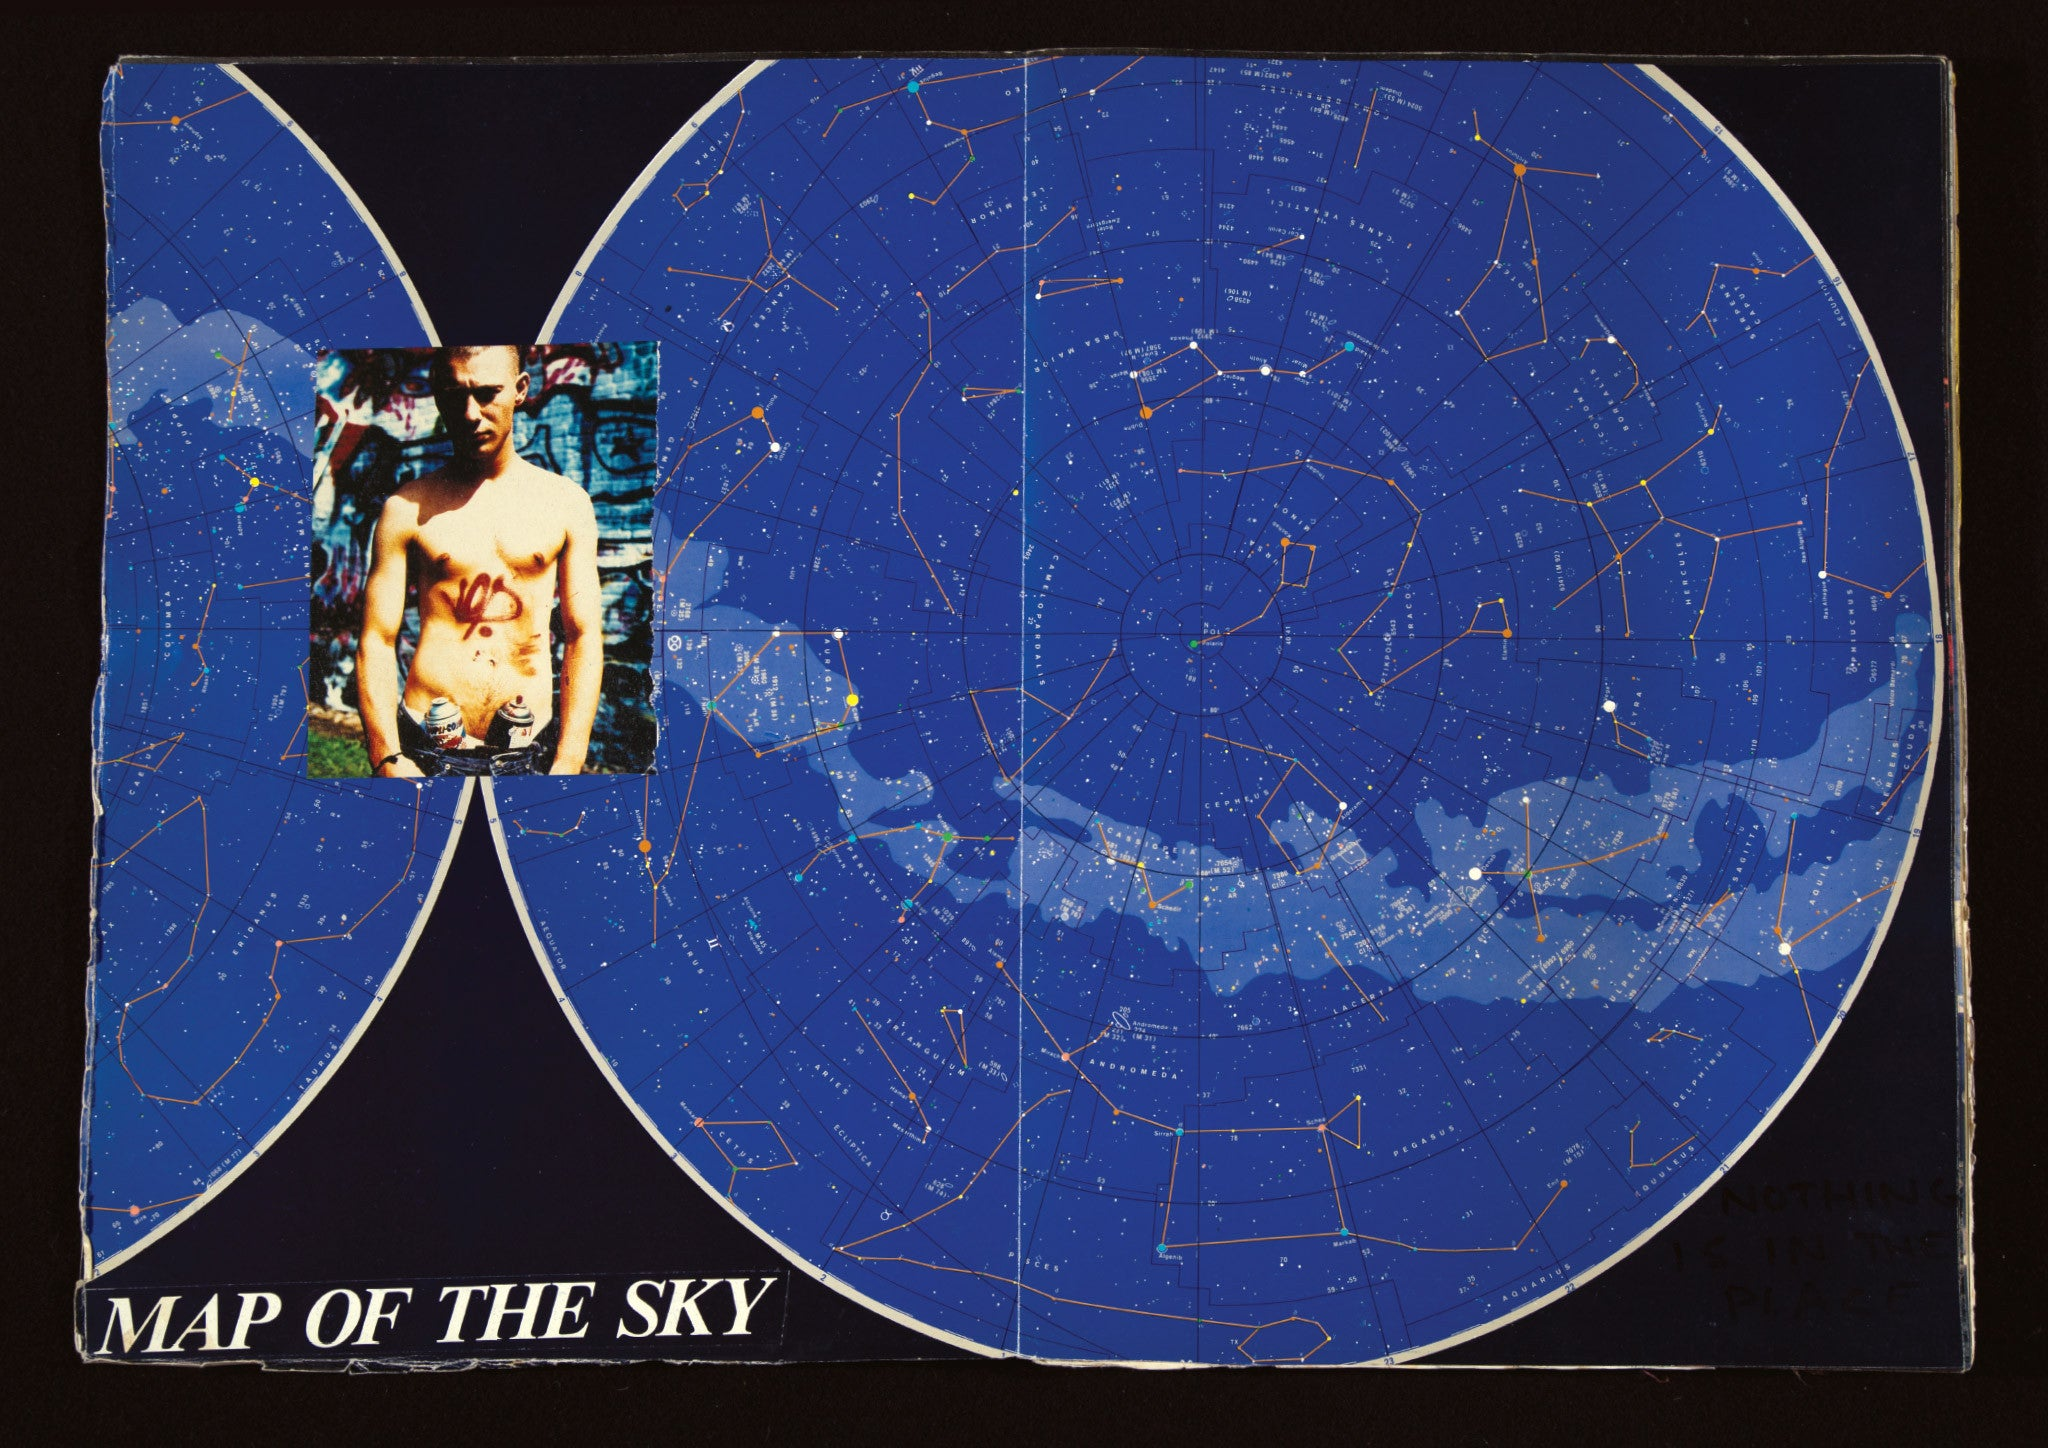 JASON EVANS. MAP OF THE SKY.